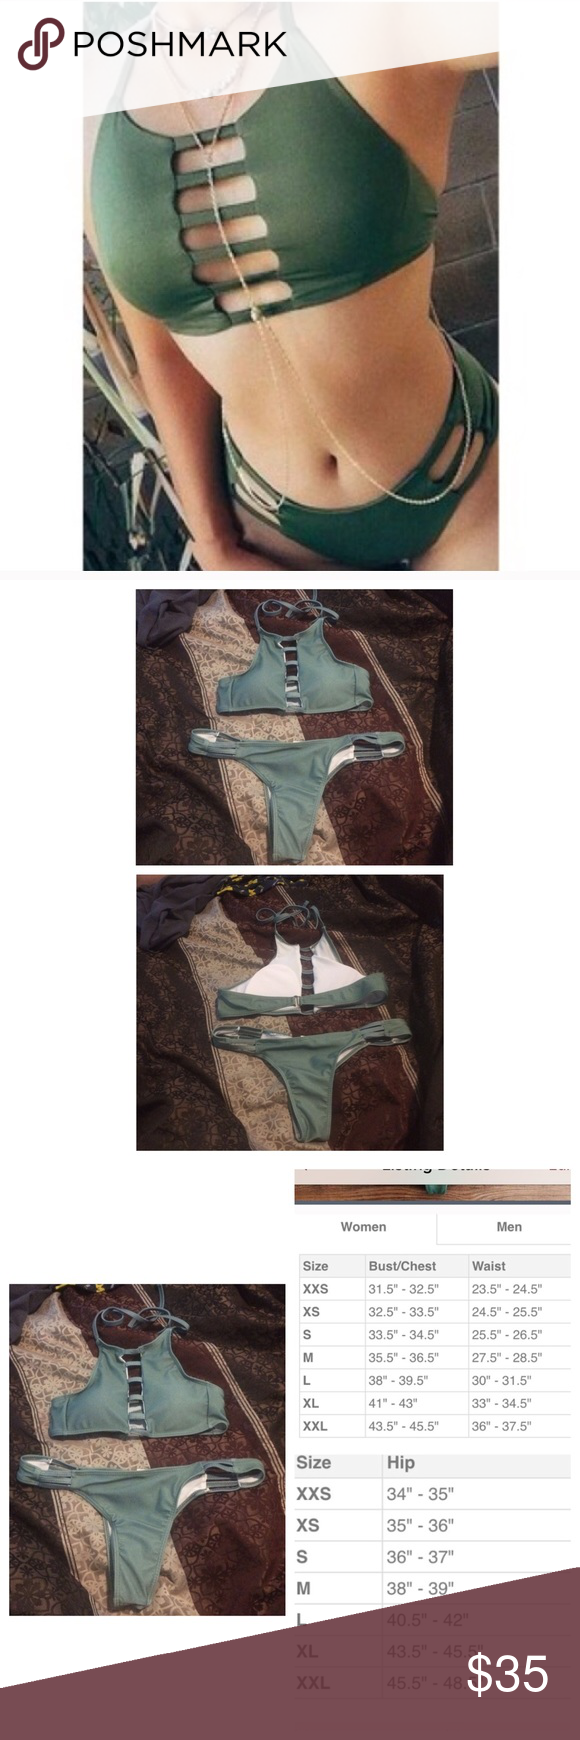 SUBMIT OFFERSNWT olive green strappy bikini PLEASE ASK IF ...